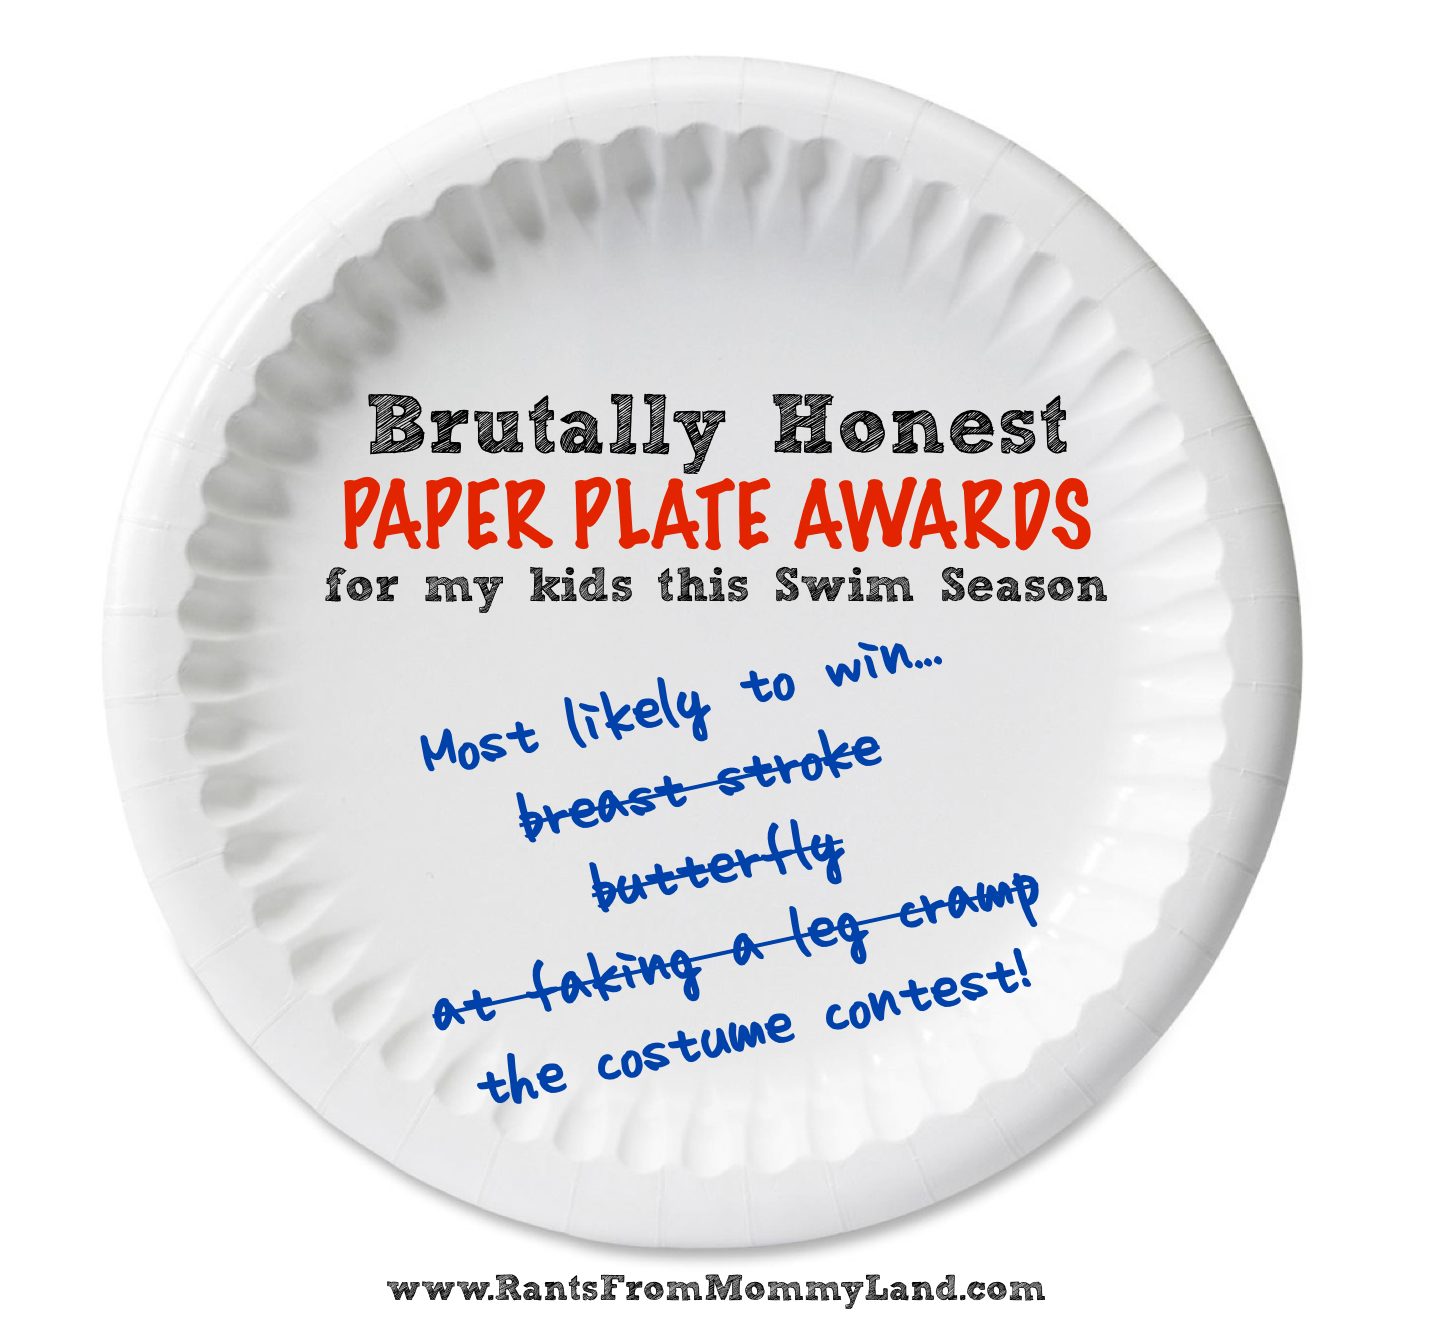 RANTS FROM MOMMYLAND: Brutally Honest Paper Plate Awards ...